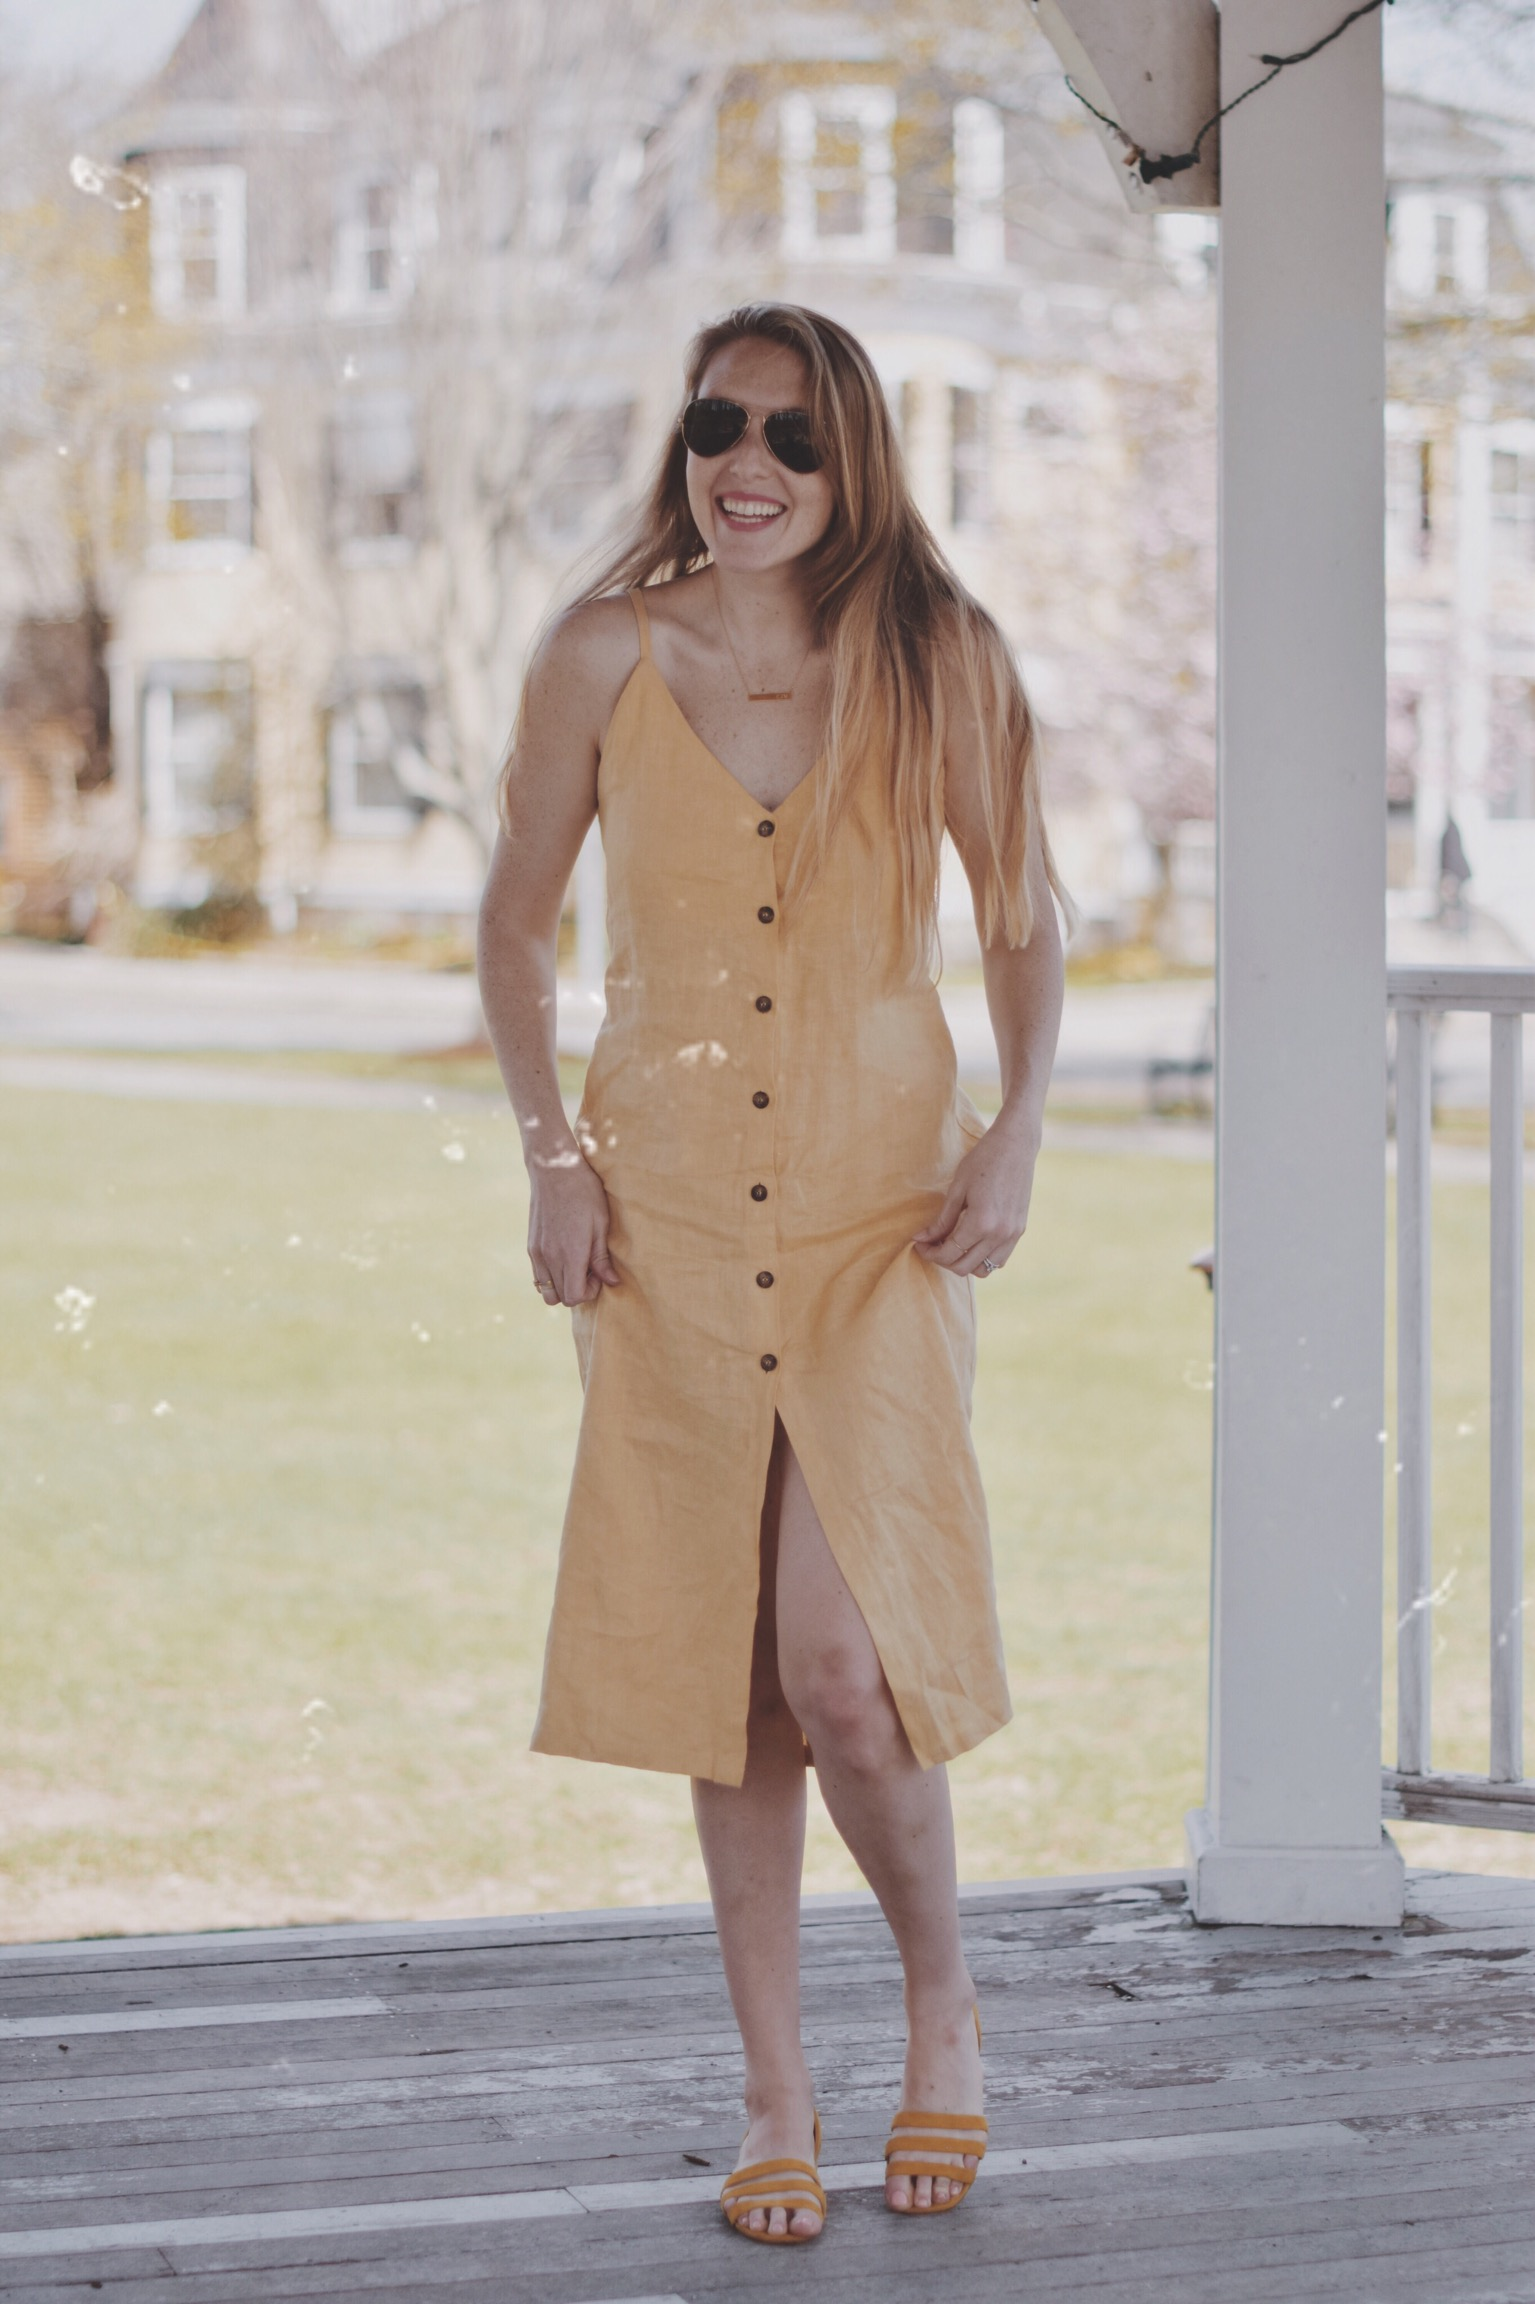 styling a canary yellow linen dress from Reformation as part of my summer capsule wardrobe of ethical fashion brands